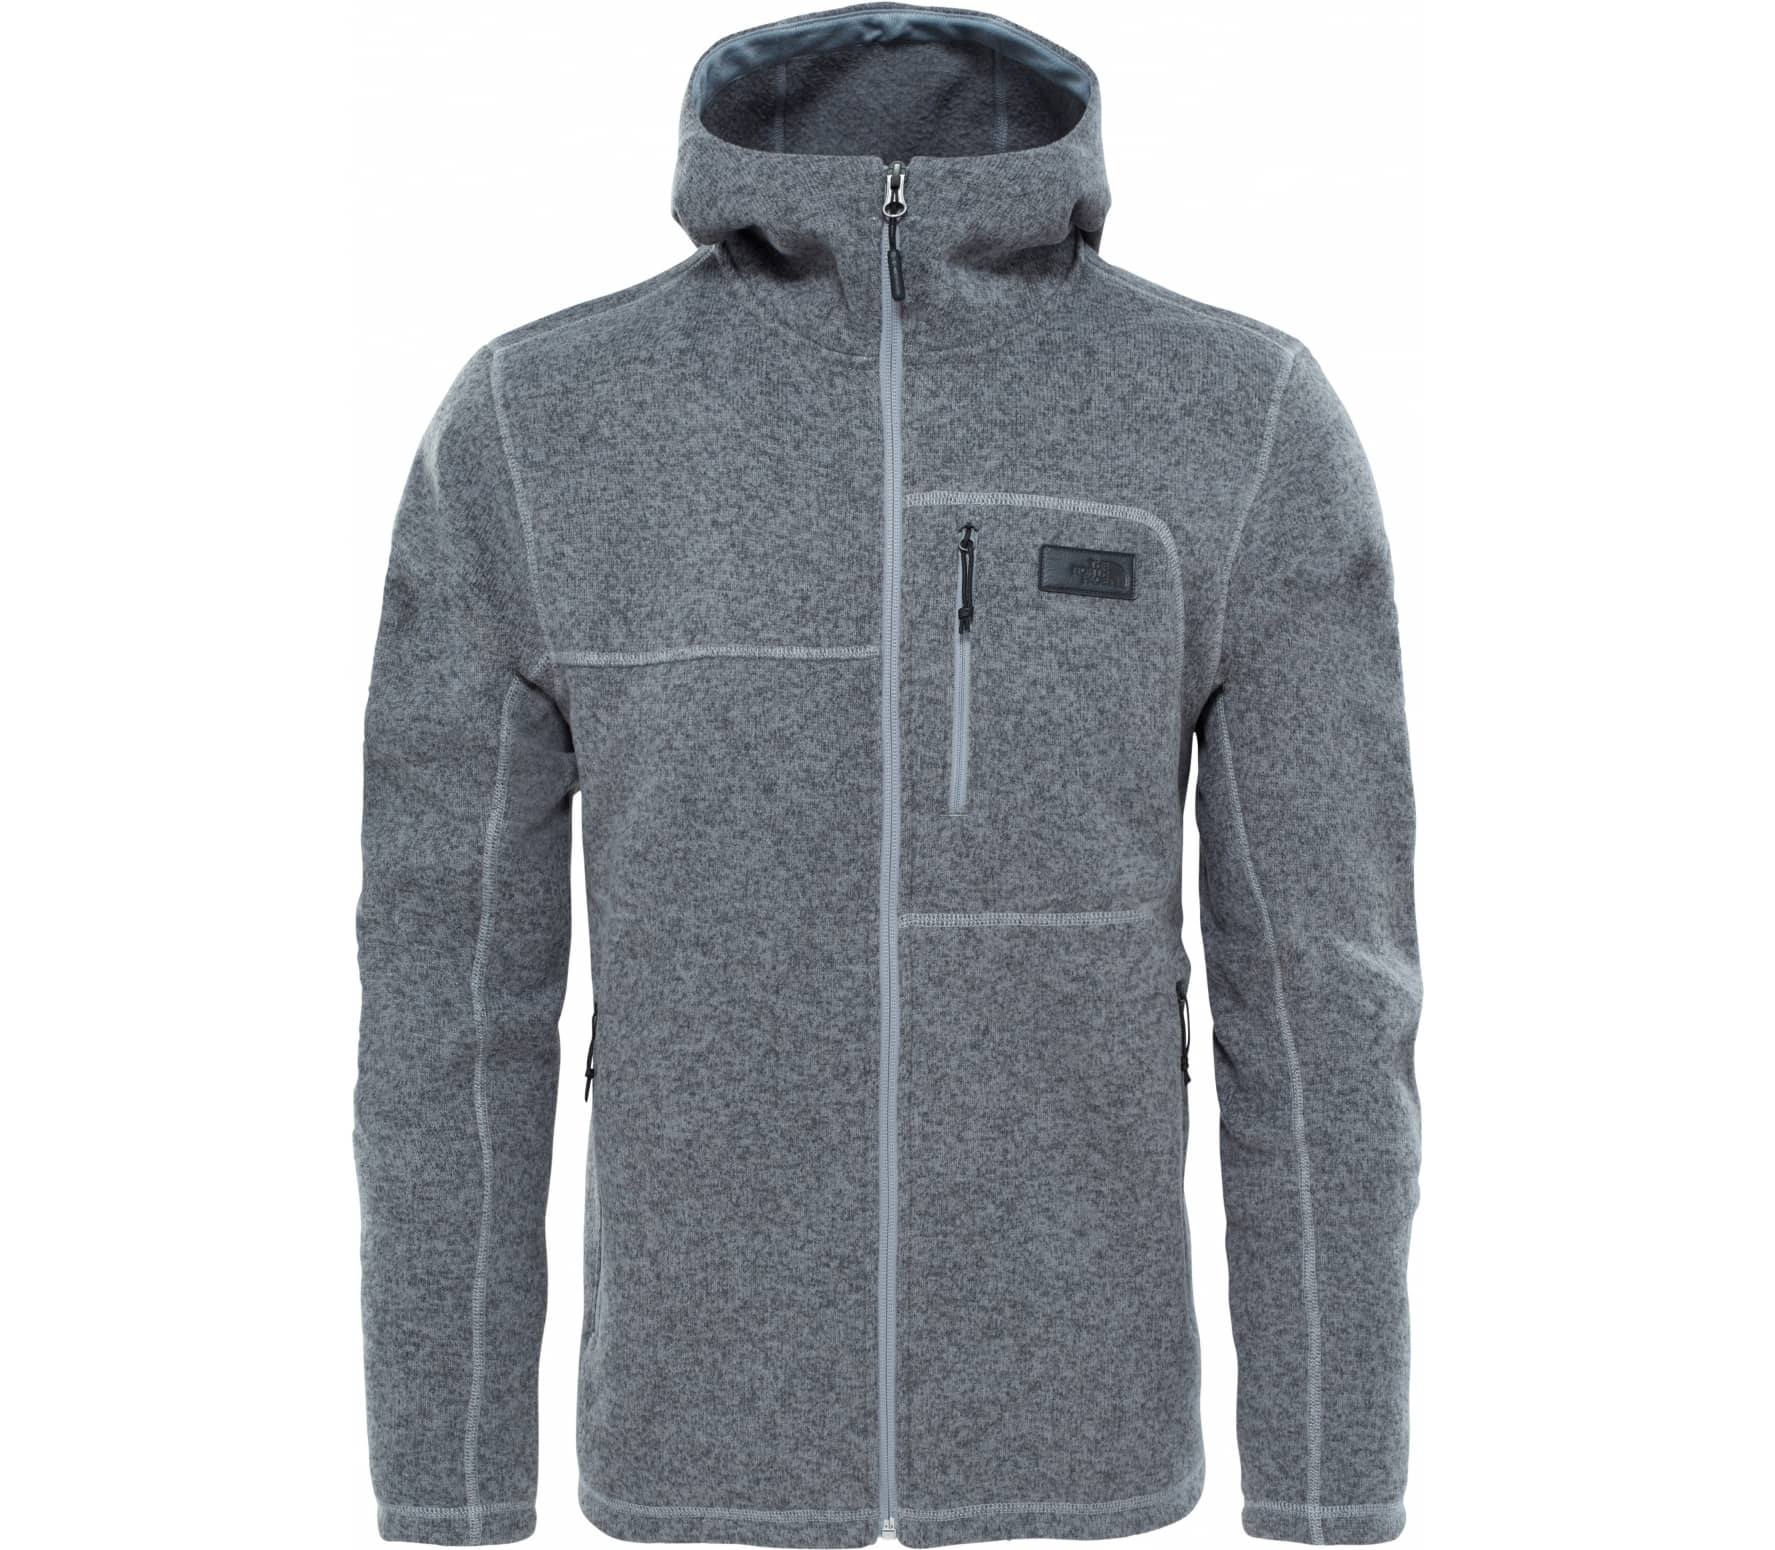 56f4b8c7edeb The North Face - Gordon Lyons Hoodie Herren Strickfleecejacke (grau ...